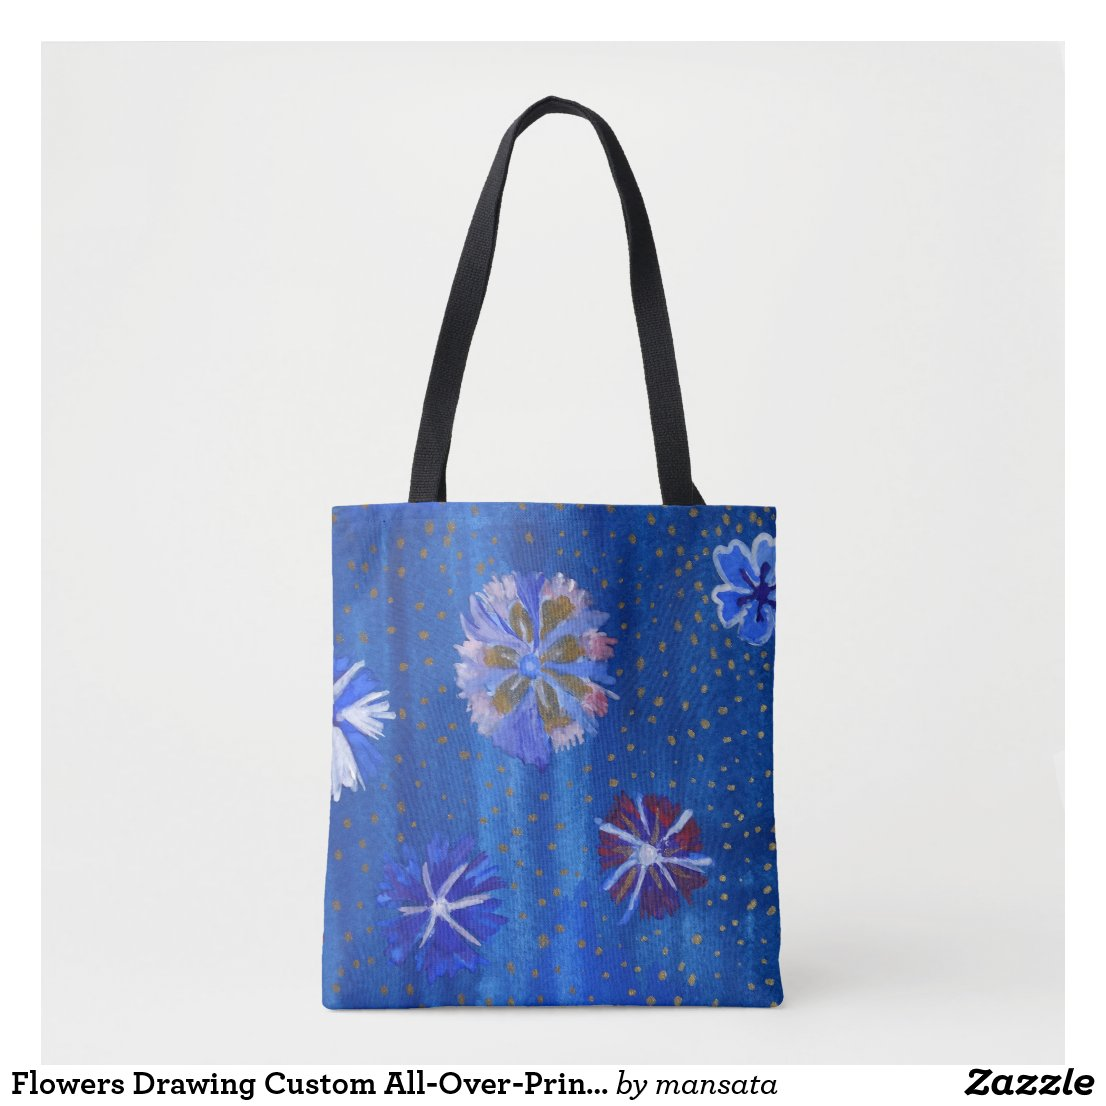 Flowers Drawing Custom All-Over-Print Tote Bag